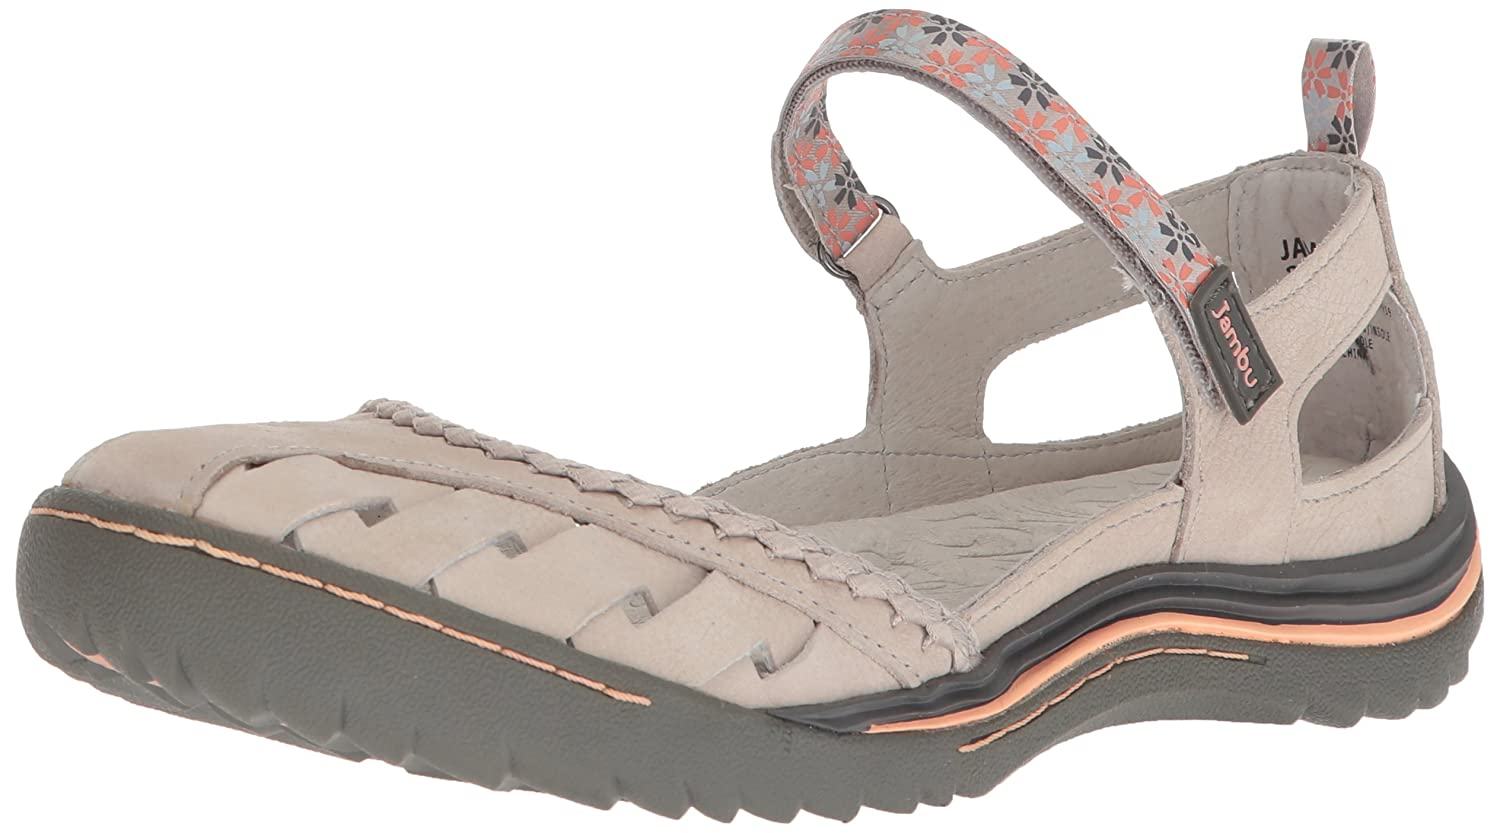 Jambu Women's Apple Blossom Mary Jane Flat B074KQMM4L 6 B(M) US|Light Grey